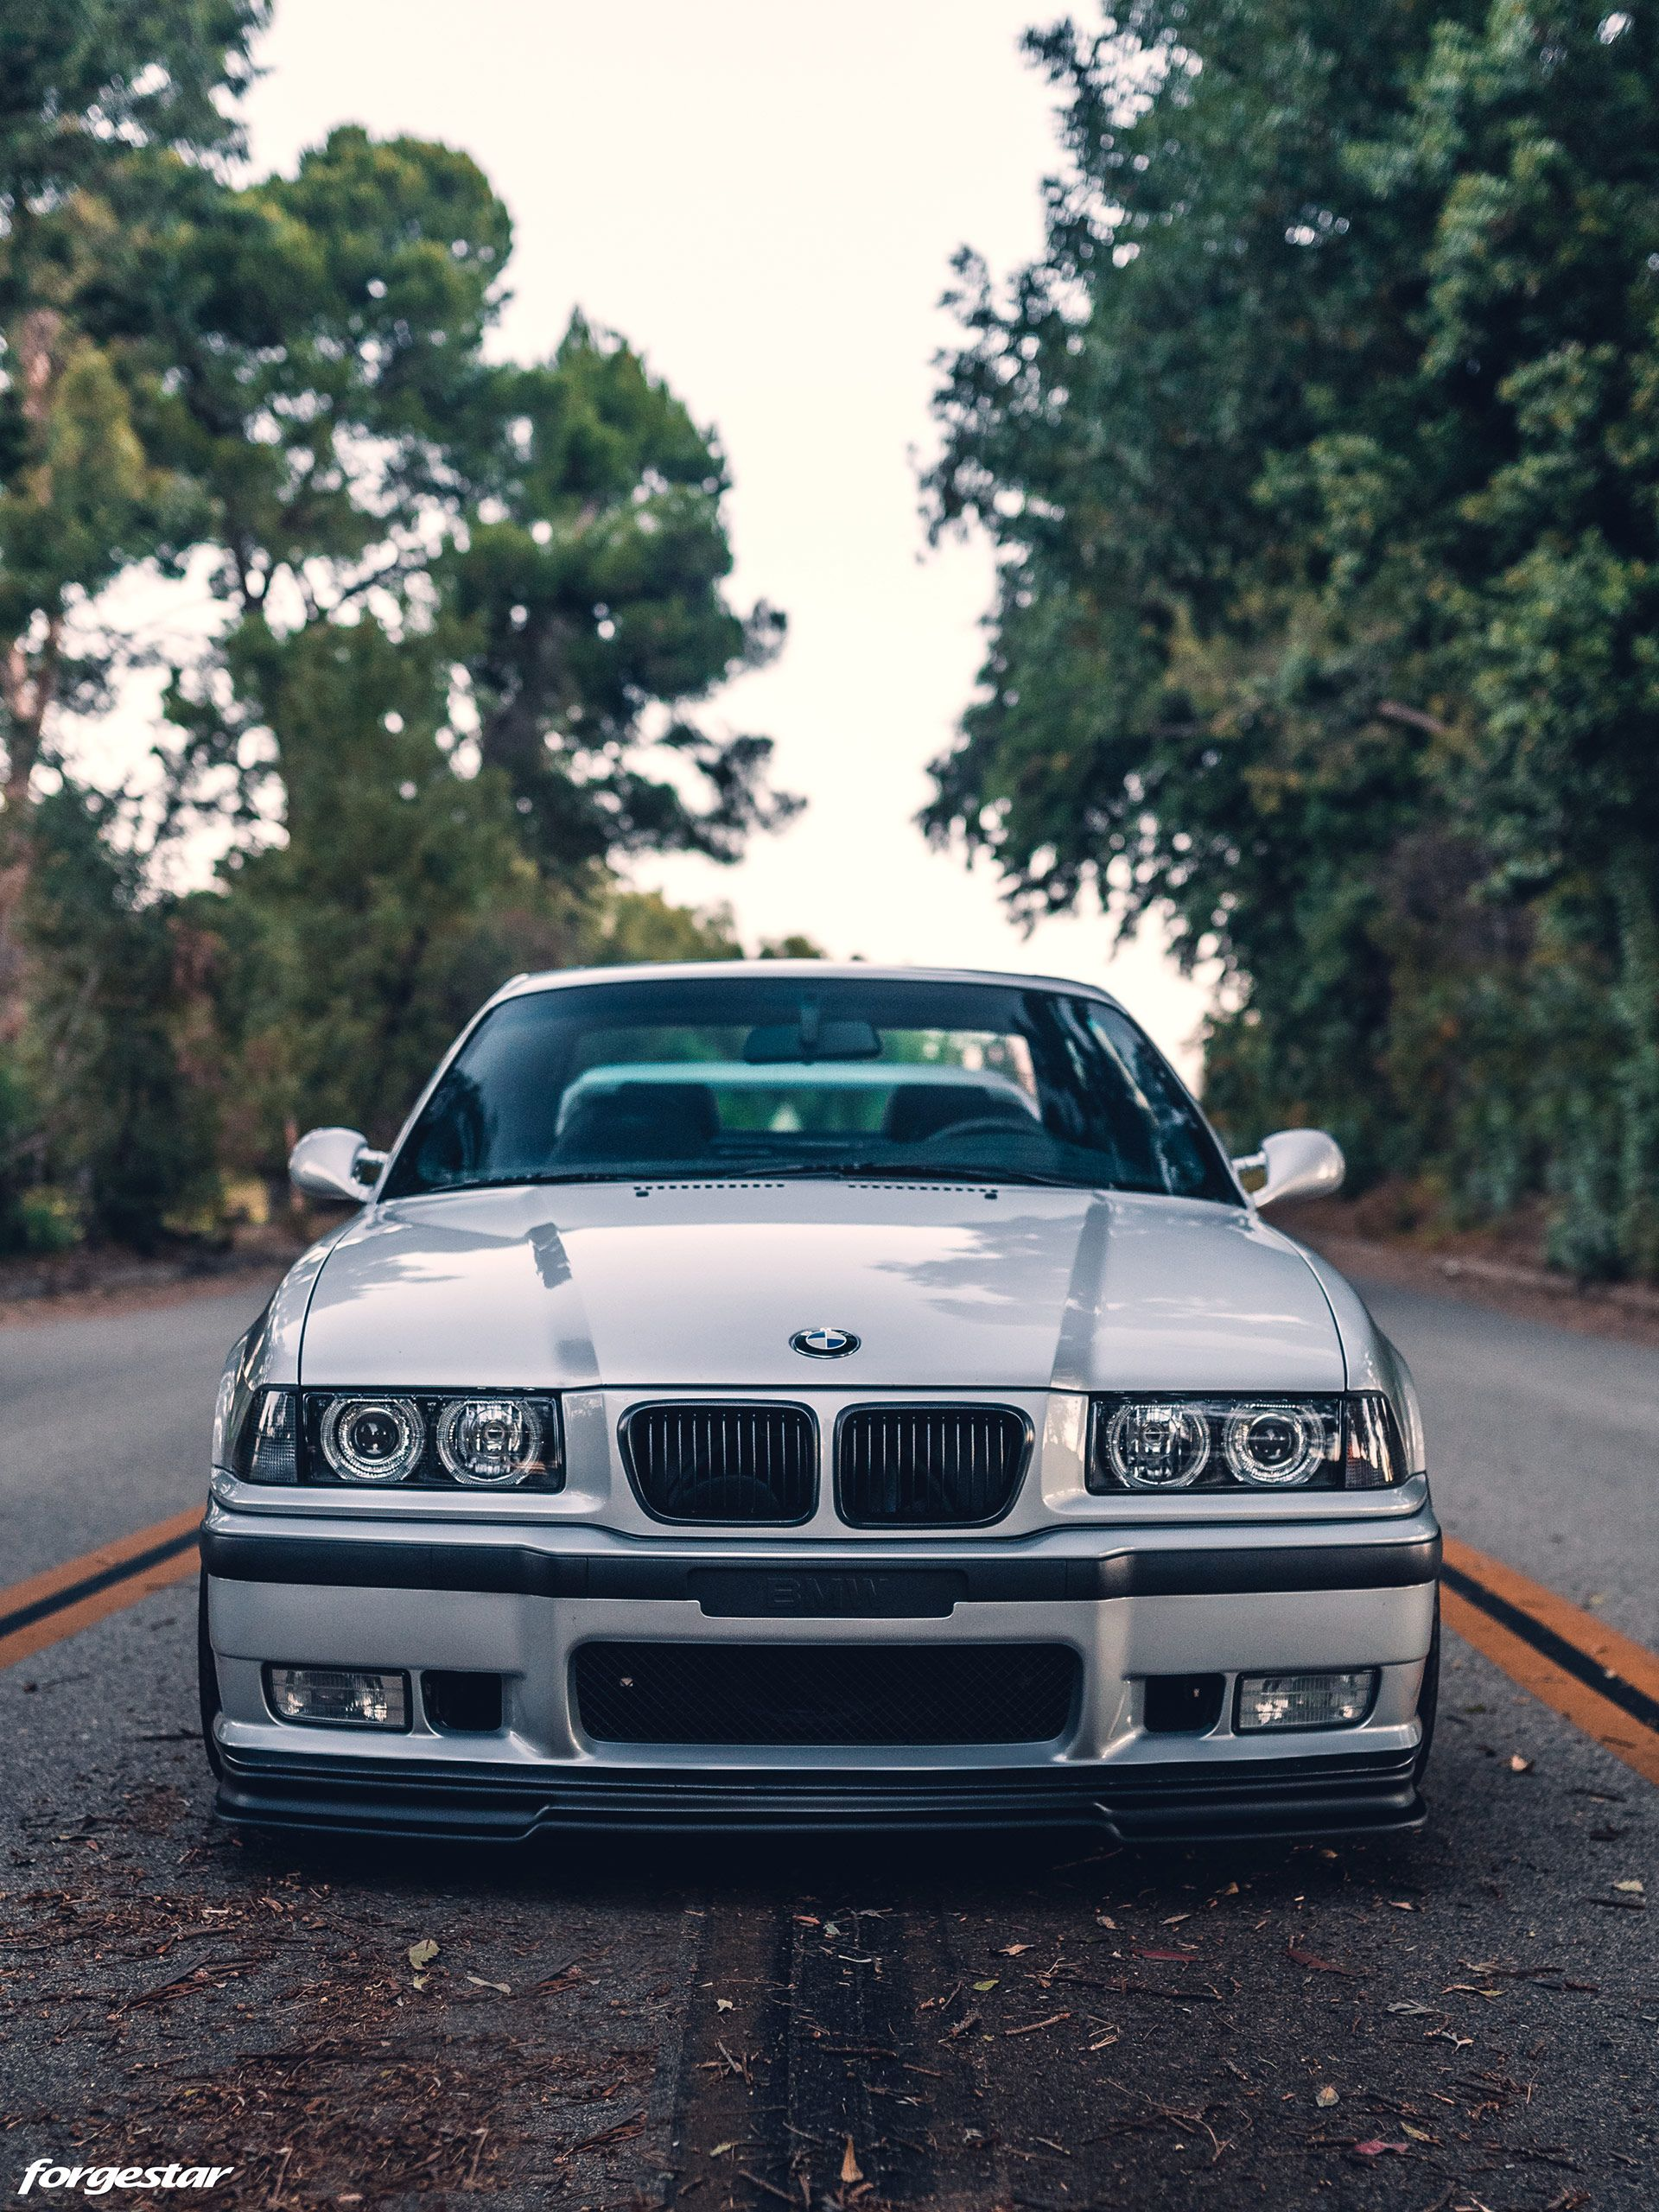 Artic Silver Bmw E36 M3 With Aftermarket Mods And Wheels In 2020 Bmw Bmw E36 Bmw Wallpapers